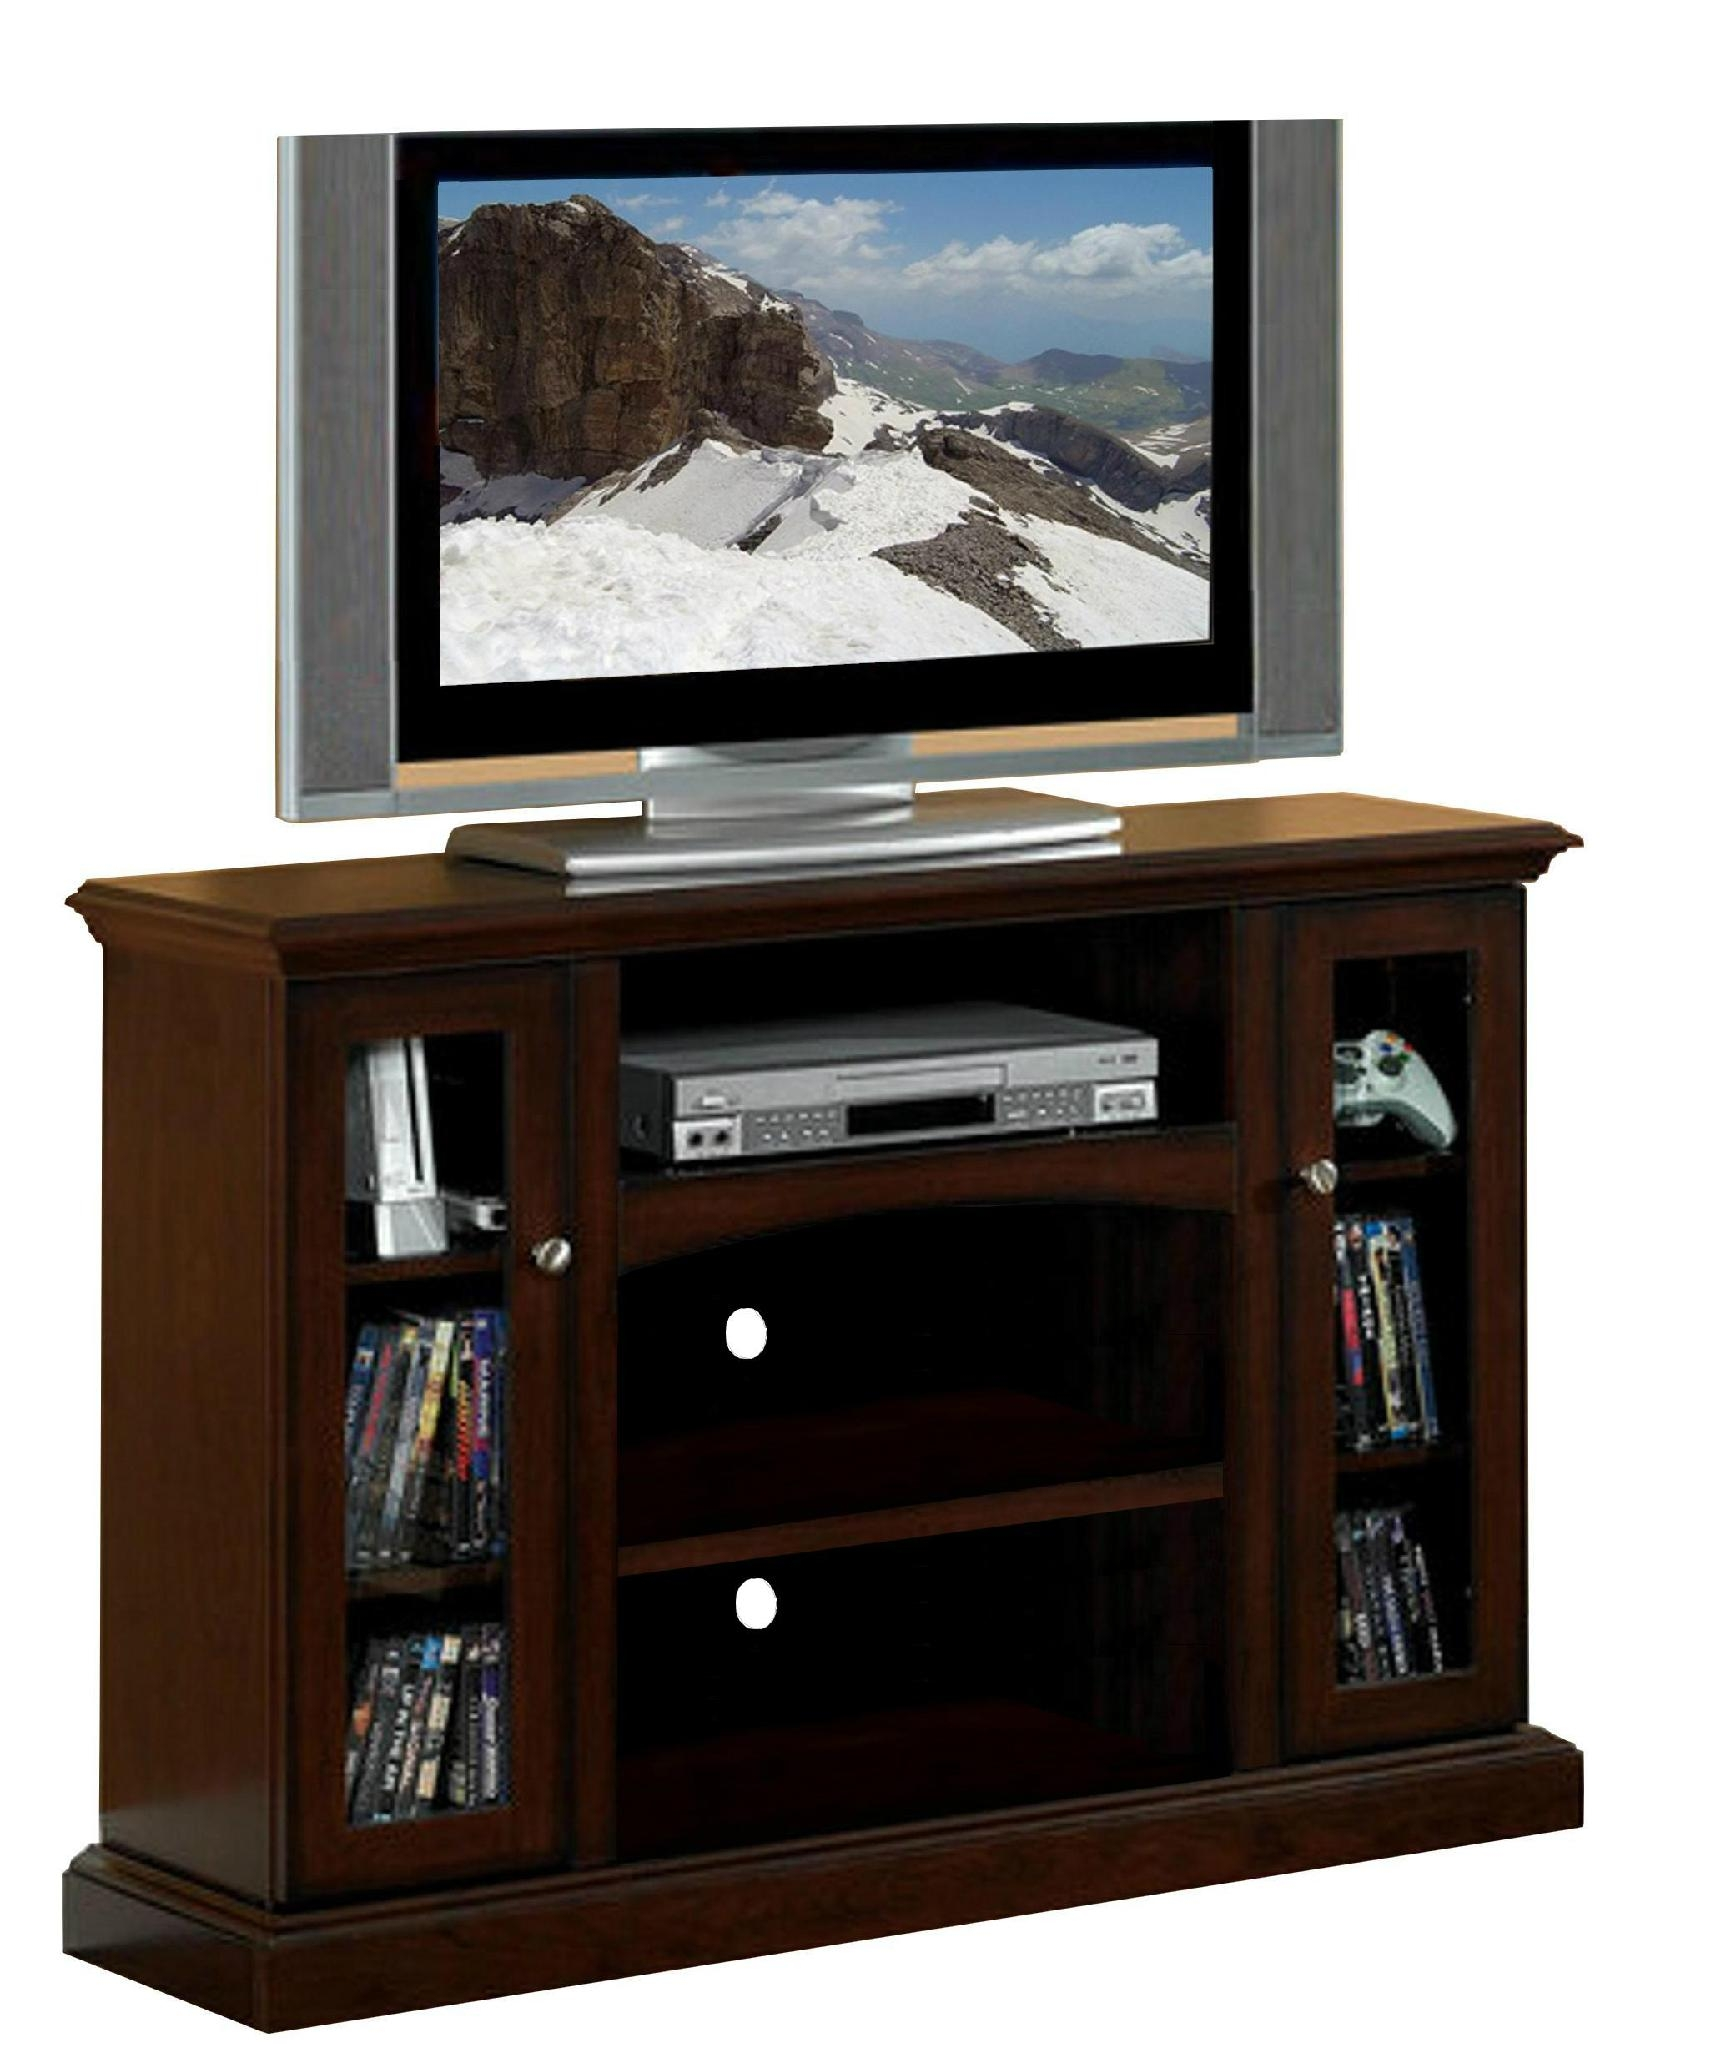 48 inch espresso 2 glass doors entertainment tall tv stands wd 3872 mighty taiwan for Tall tv stands for living room